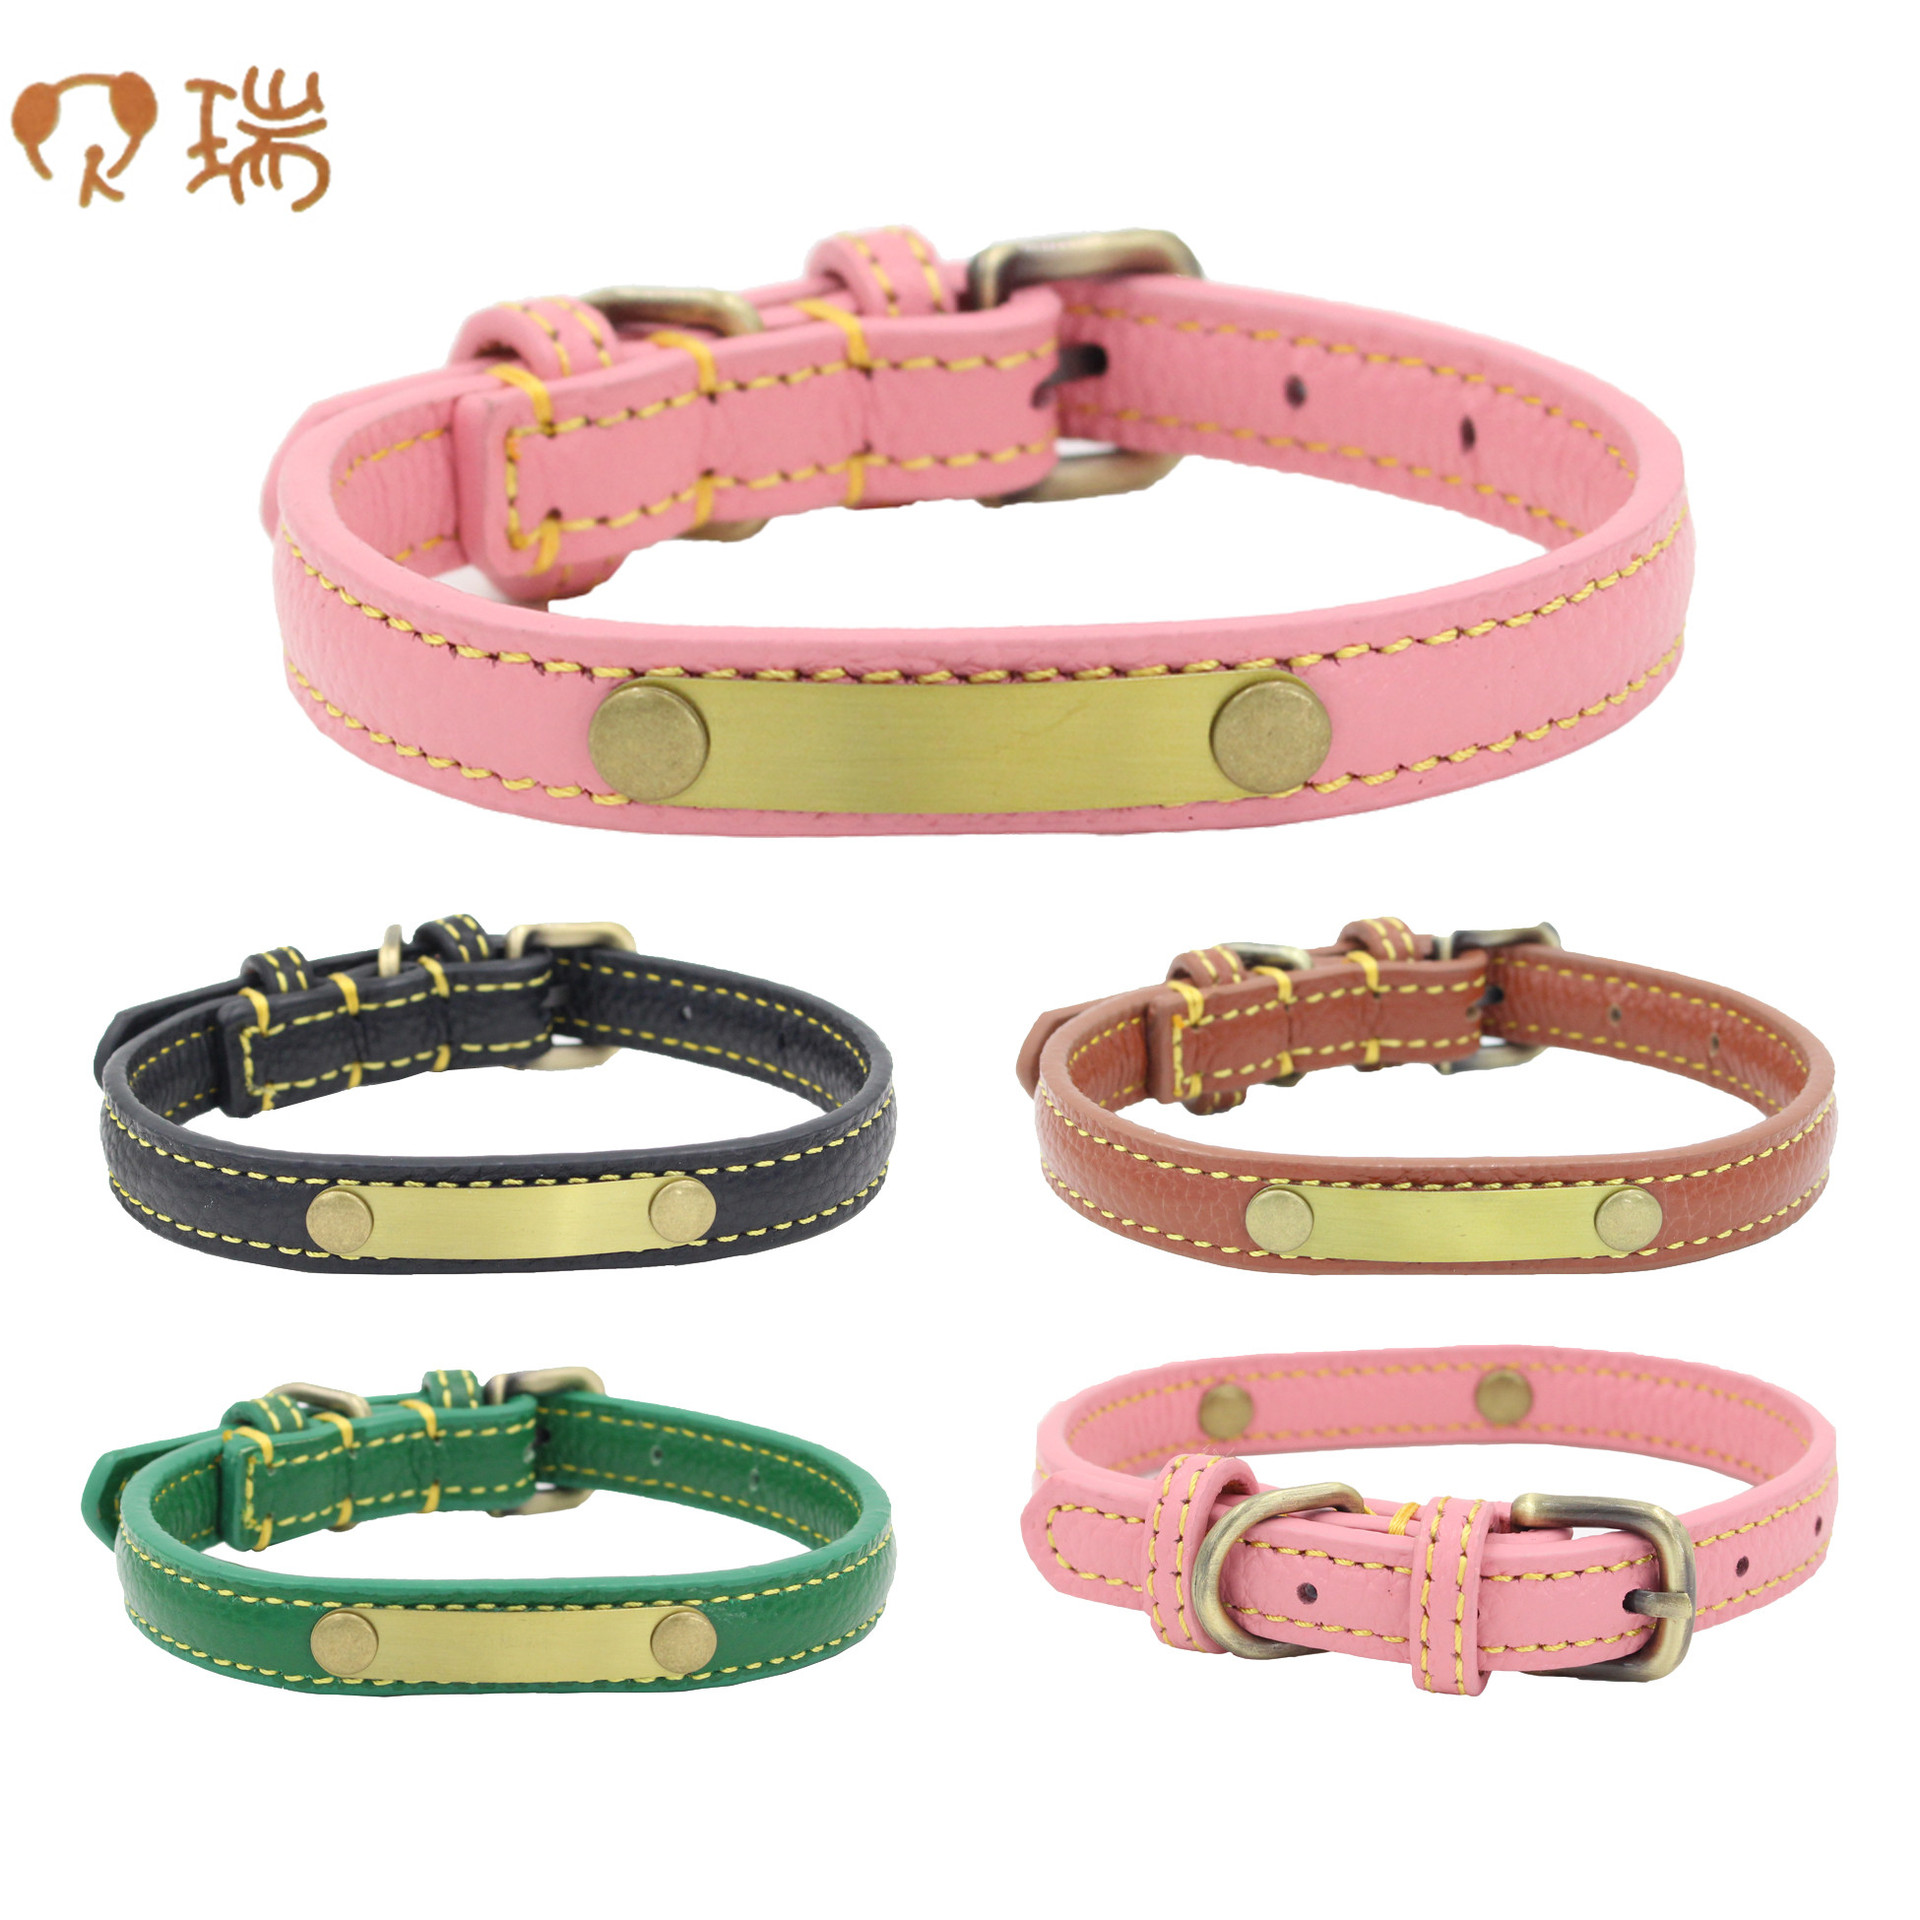 Berry New Style Can Carve Writing Genuine Leather Retro Pet Collar Double Layer Embossed Leather Genuine Leather Dog Neck Ring S